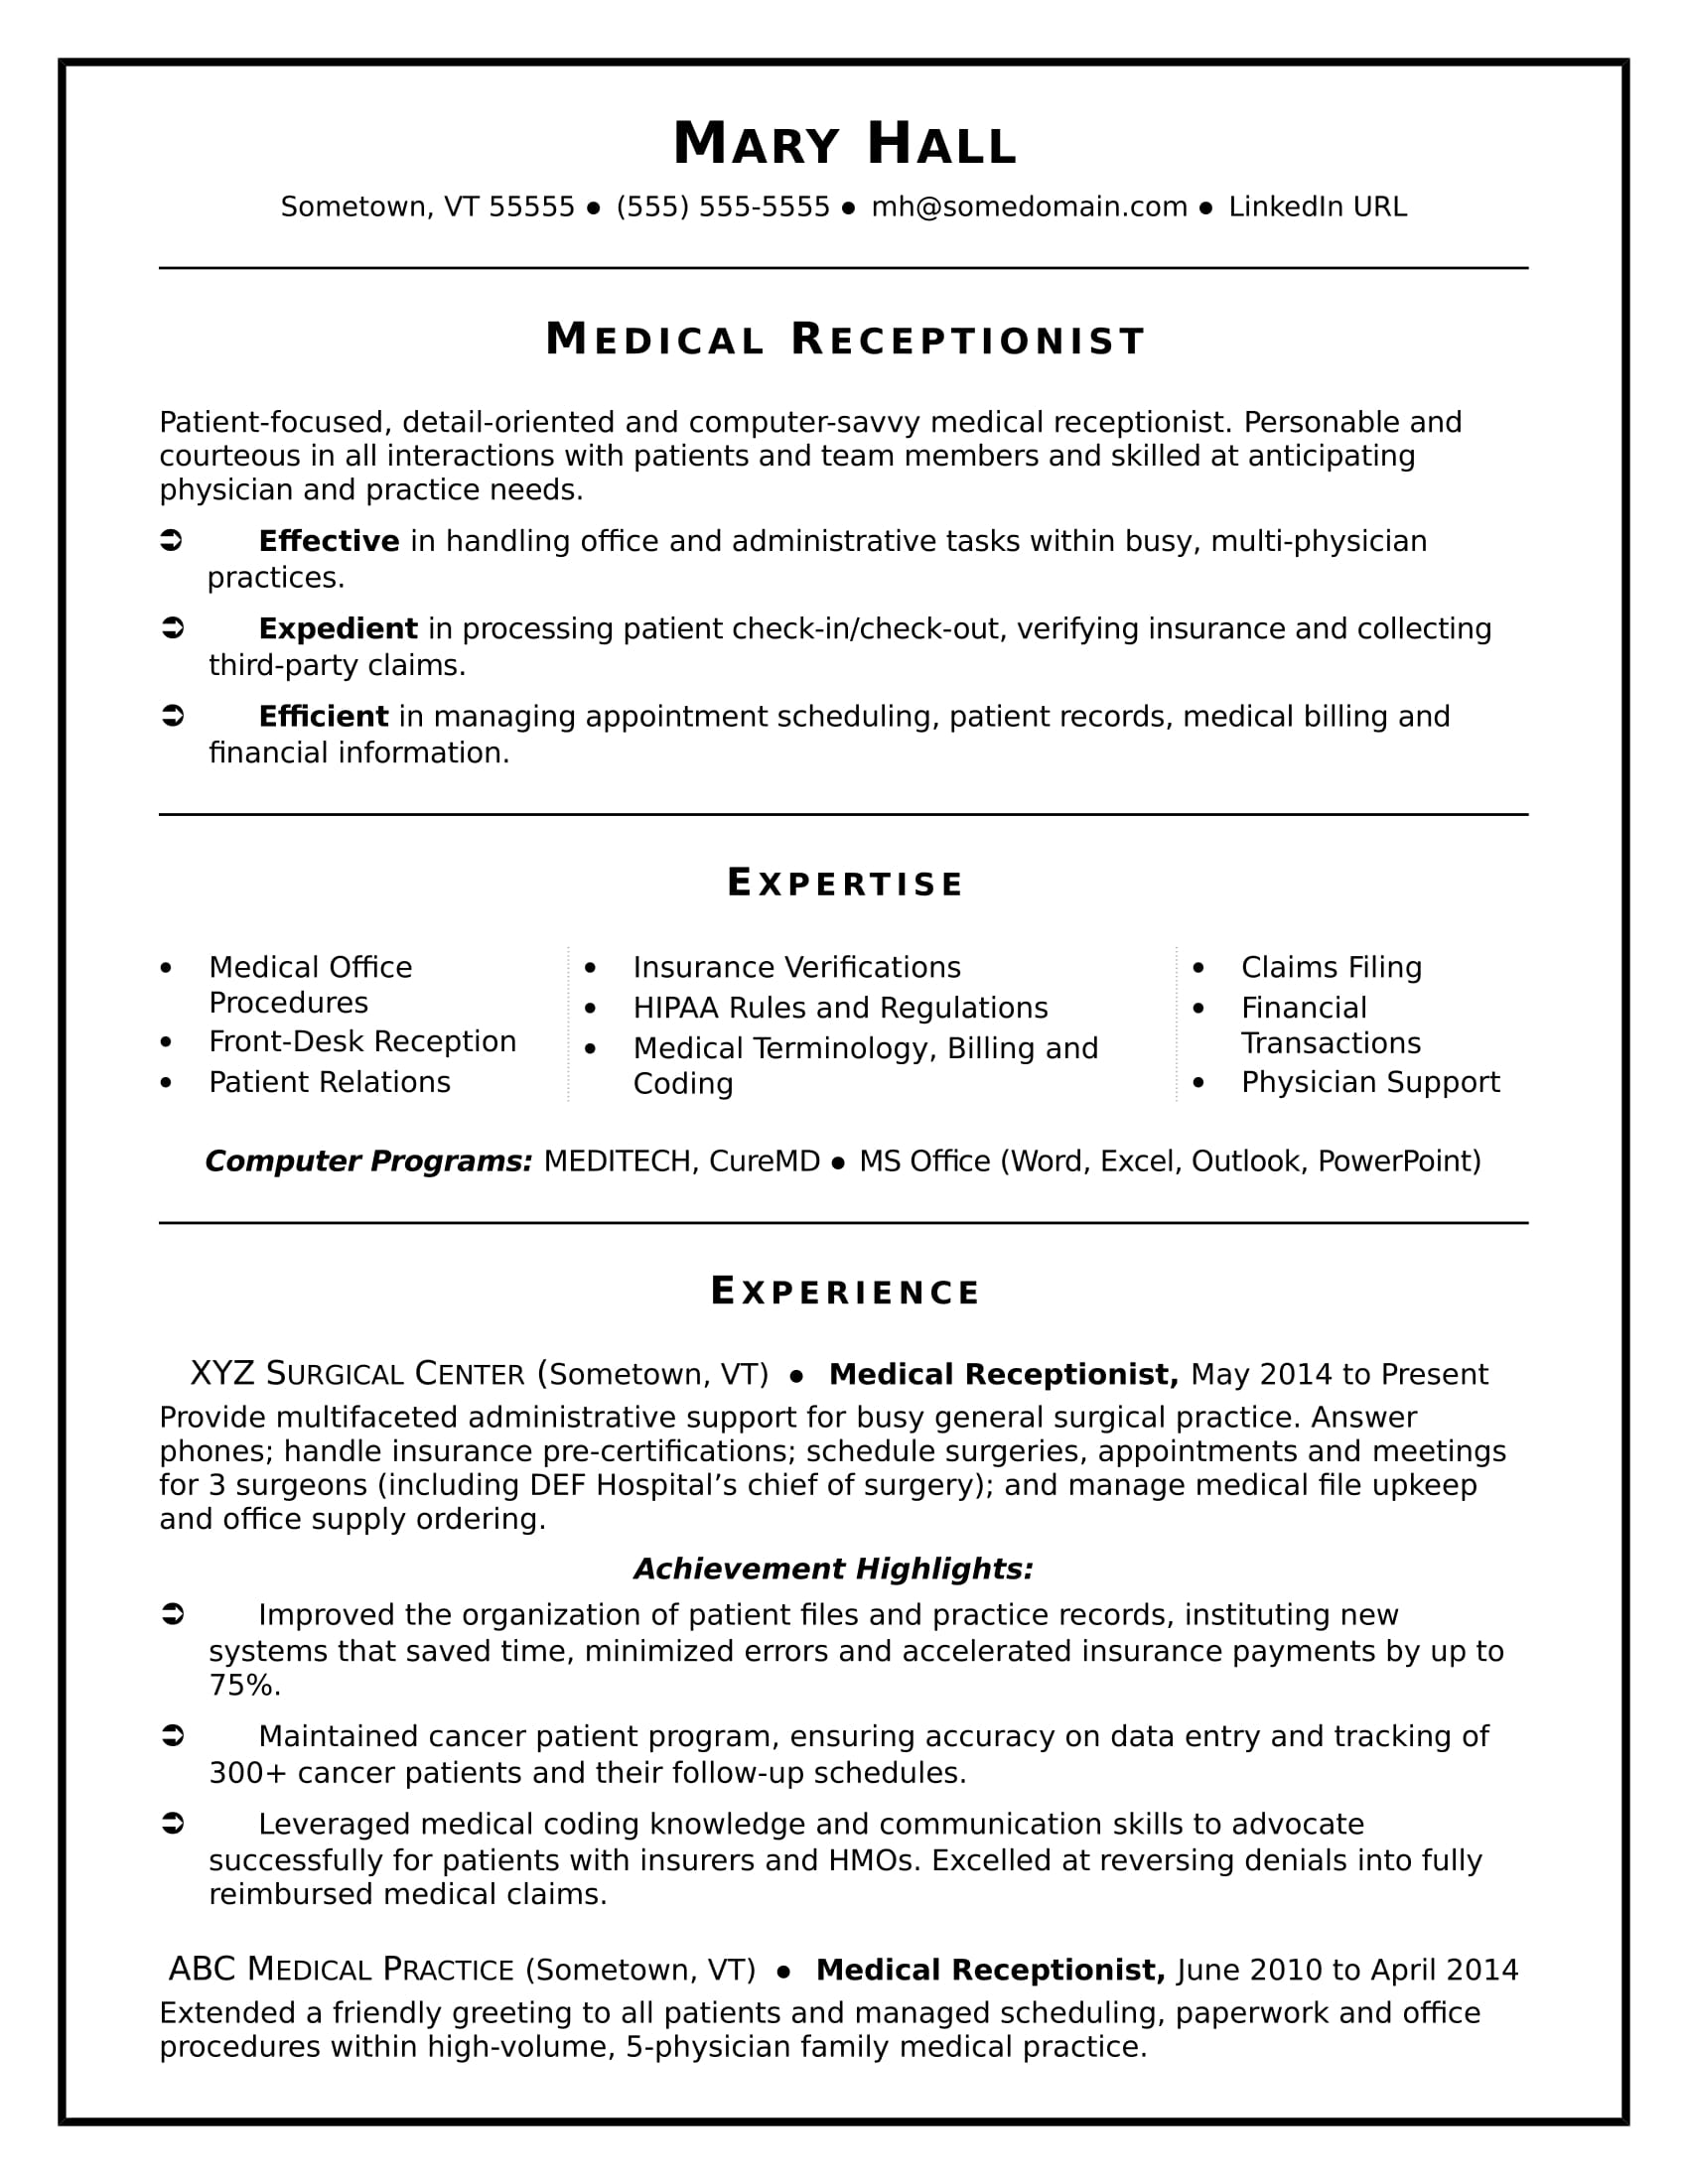 Beautiful Medical Receptionist Resume Sample Inside Sample Resume For Medical Receptionist